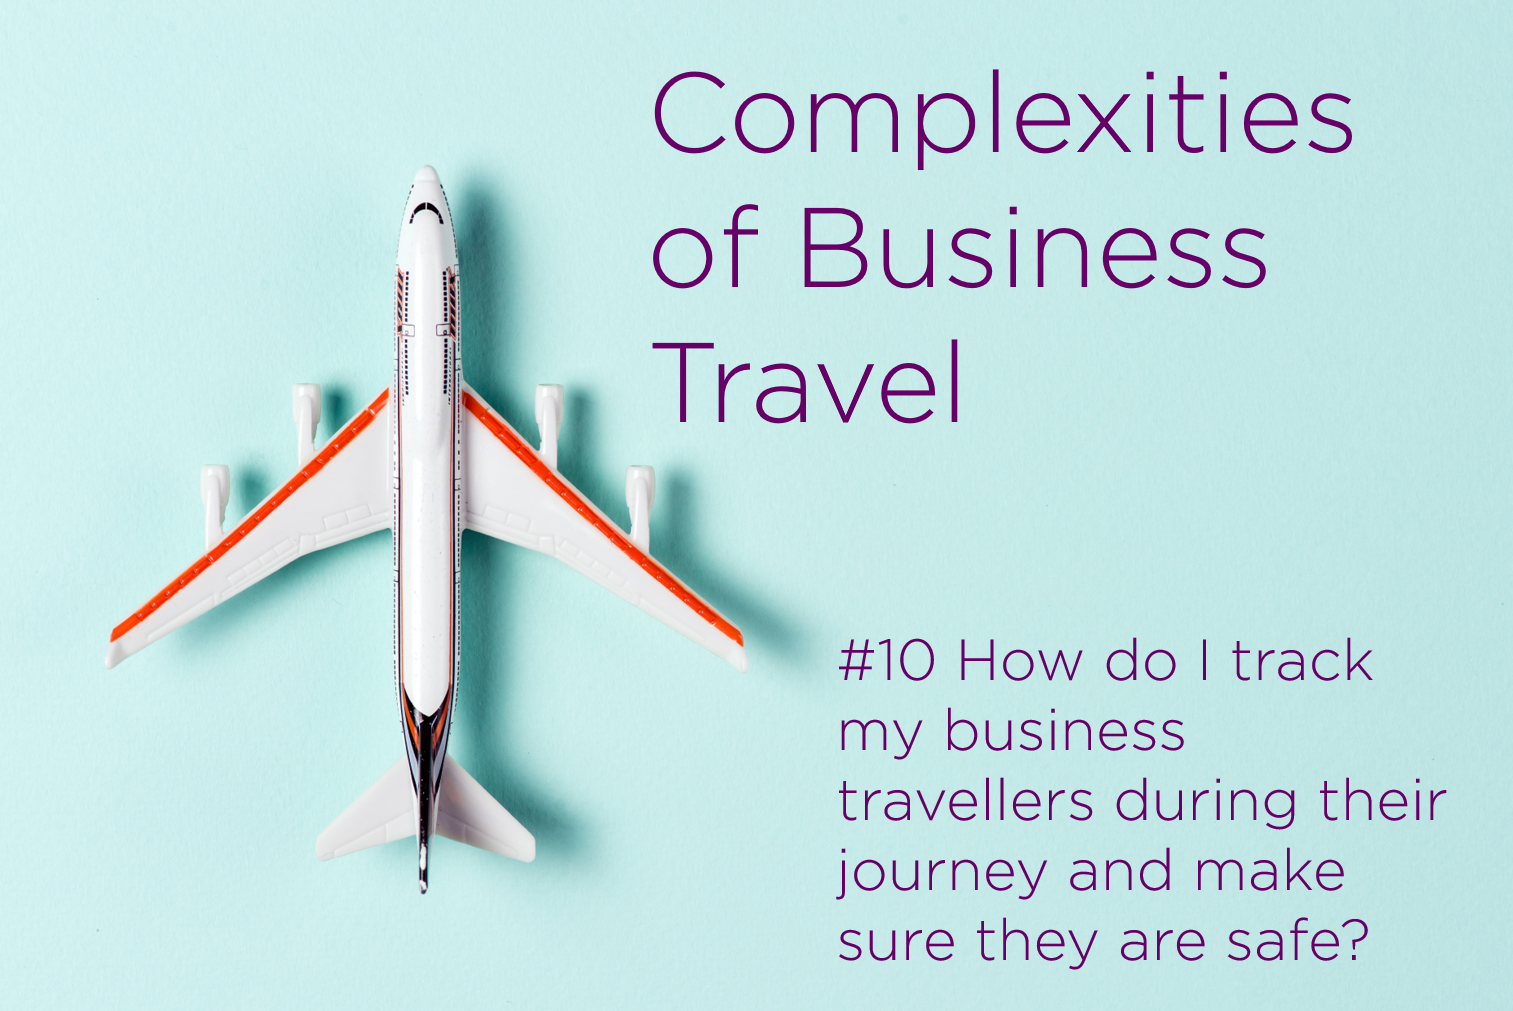 Complexities of Business Travel: #10 How do I track my business travellers during their journey and make sure they are safe?